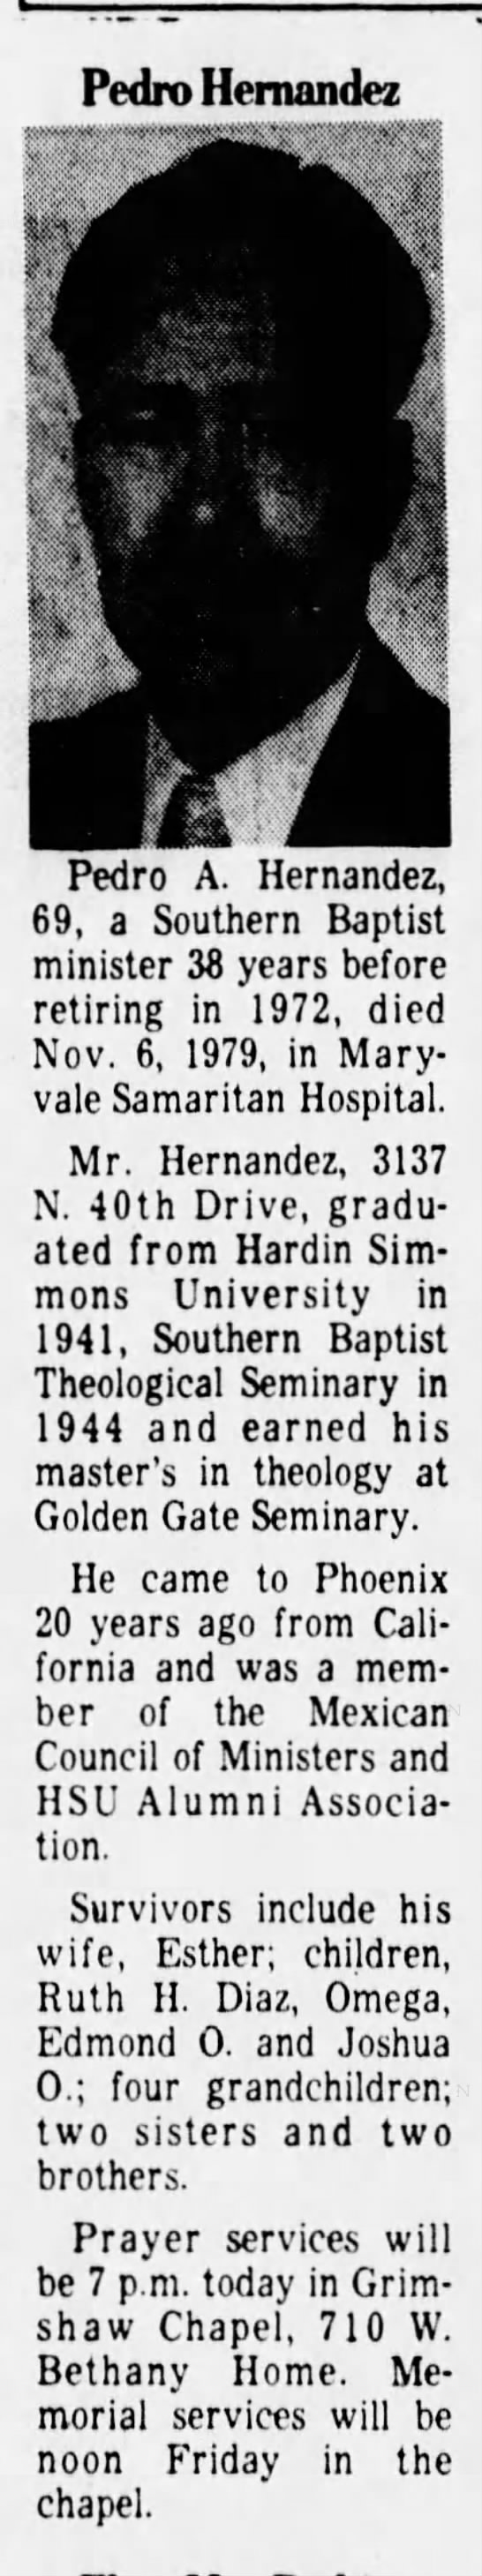 Rev Pedro Hernandez Obit - 8 November 1979 Arizona Republic (Phoenix) -